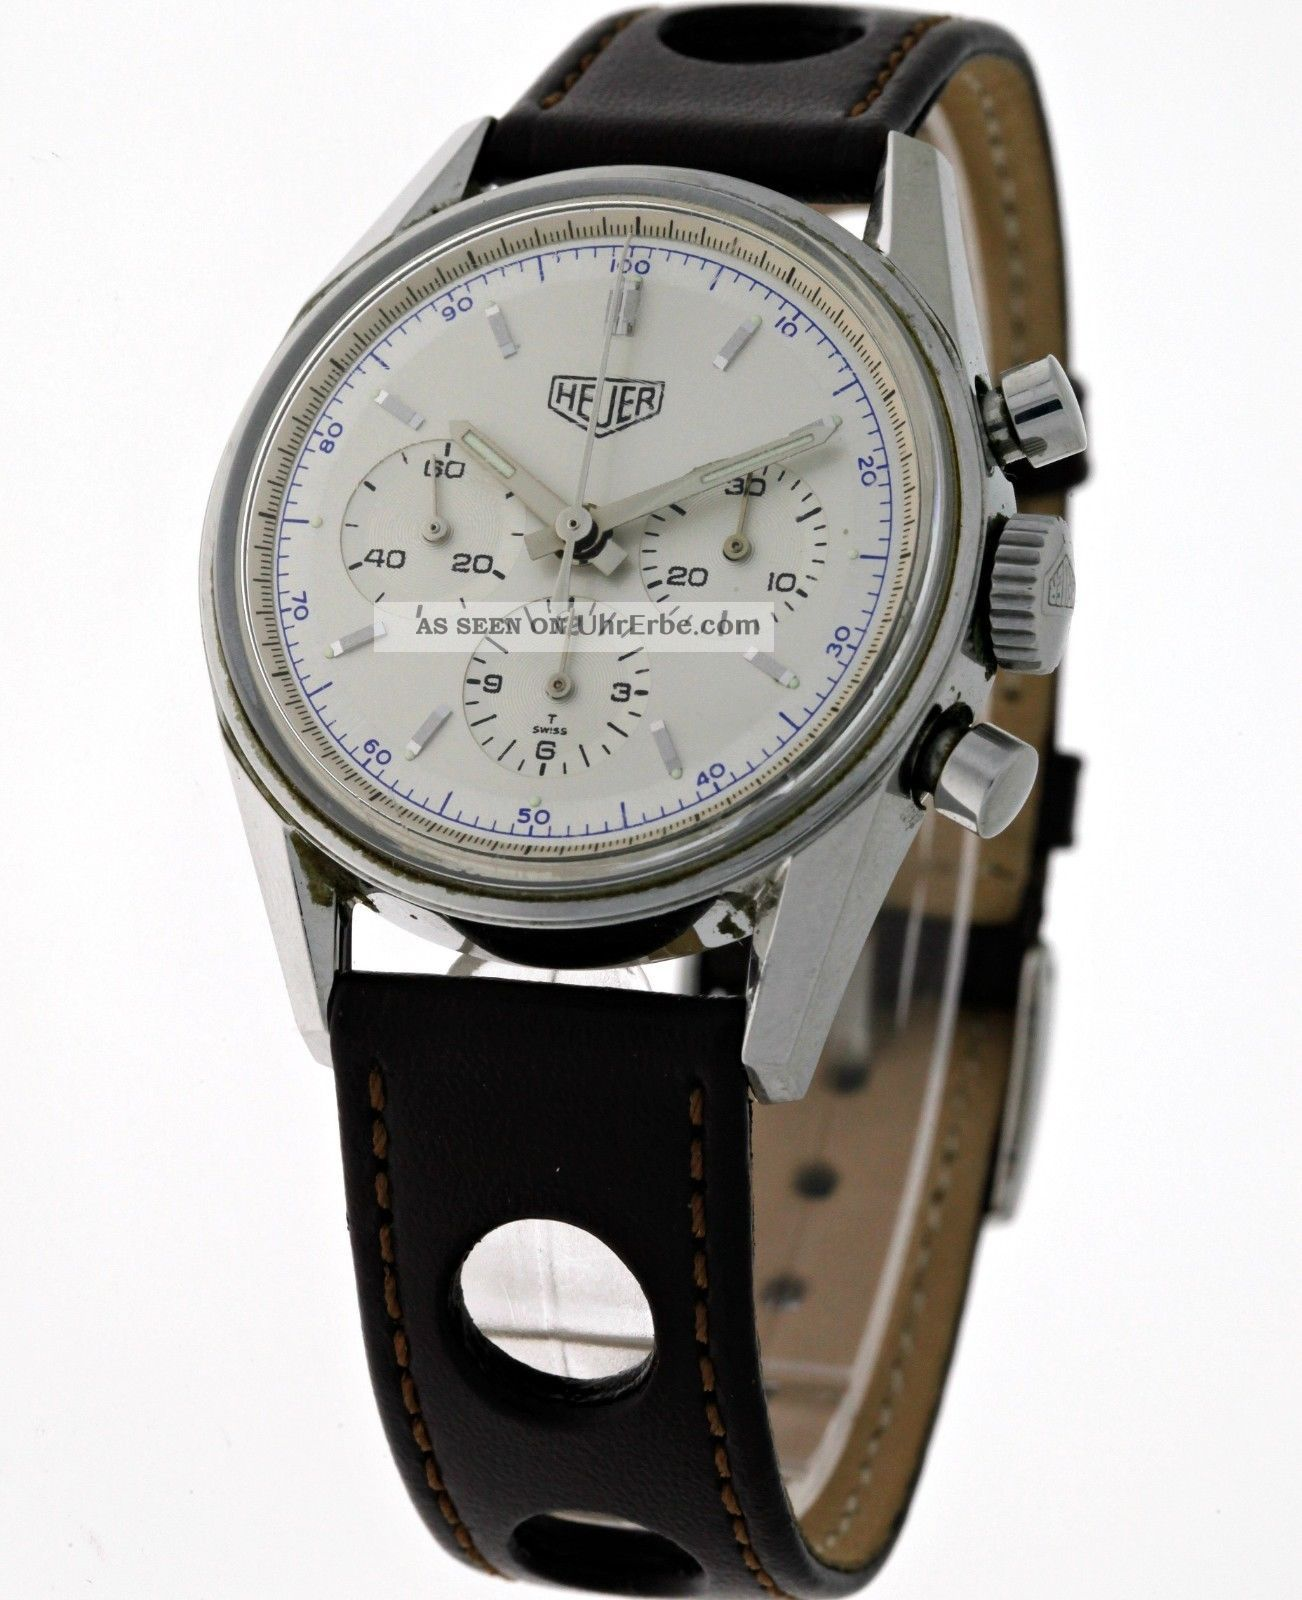 1964 Heuer Carrera Re - Edition Chronograph Cs3110 Lemania 1873 - Box&papiere Armbanduhren Bild